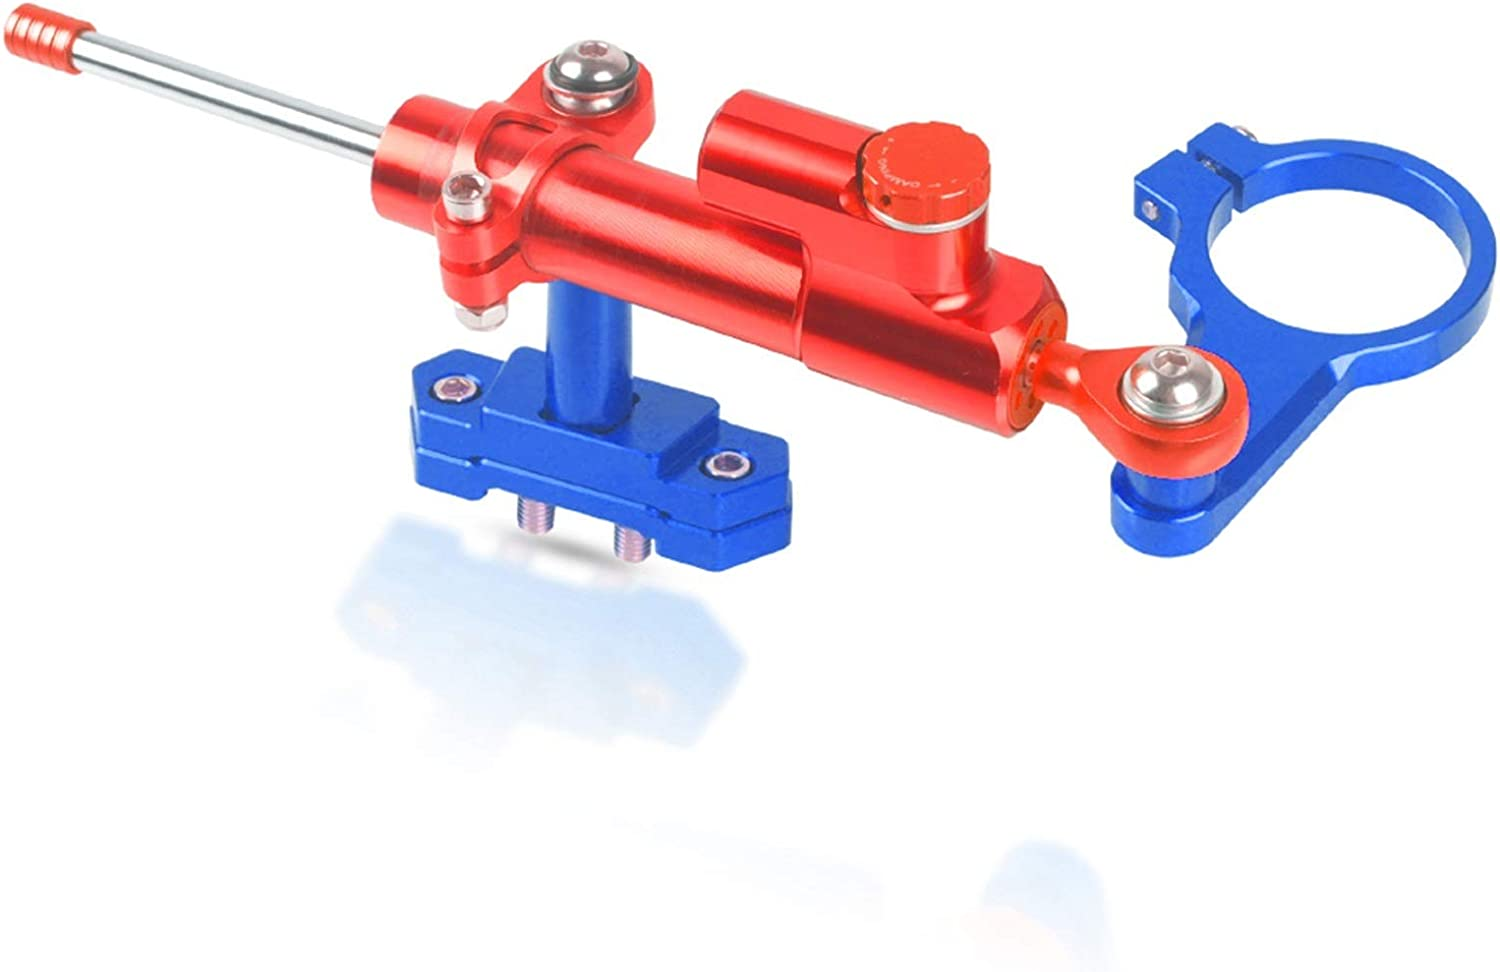 TGGFA Motorcycle Adjustable Steering M Stabilizer Damper Courier shipping free shipping Bracket Max 71% OFF